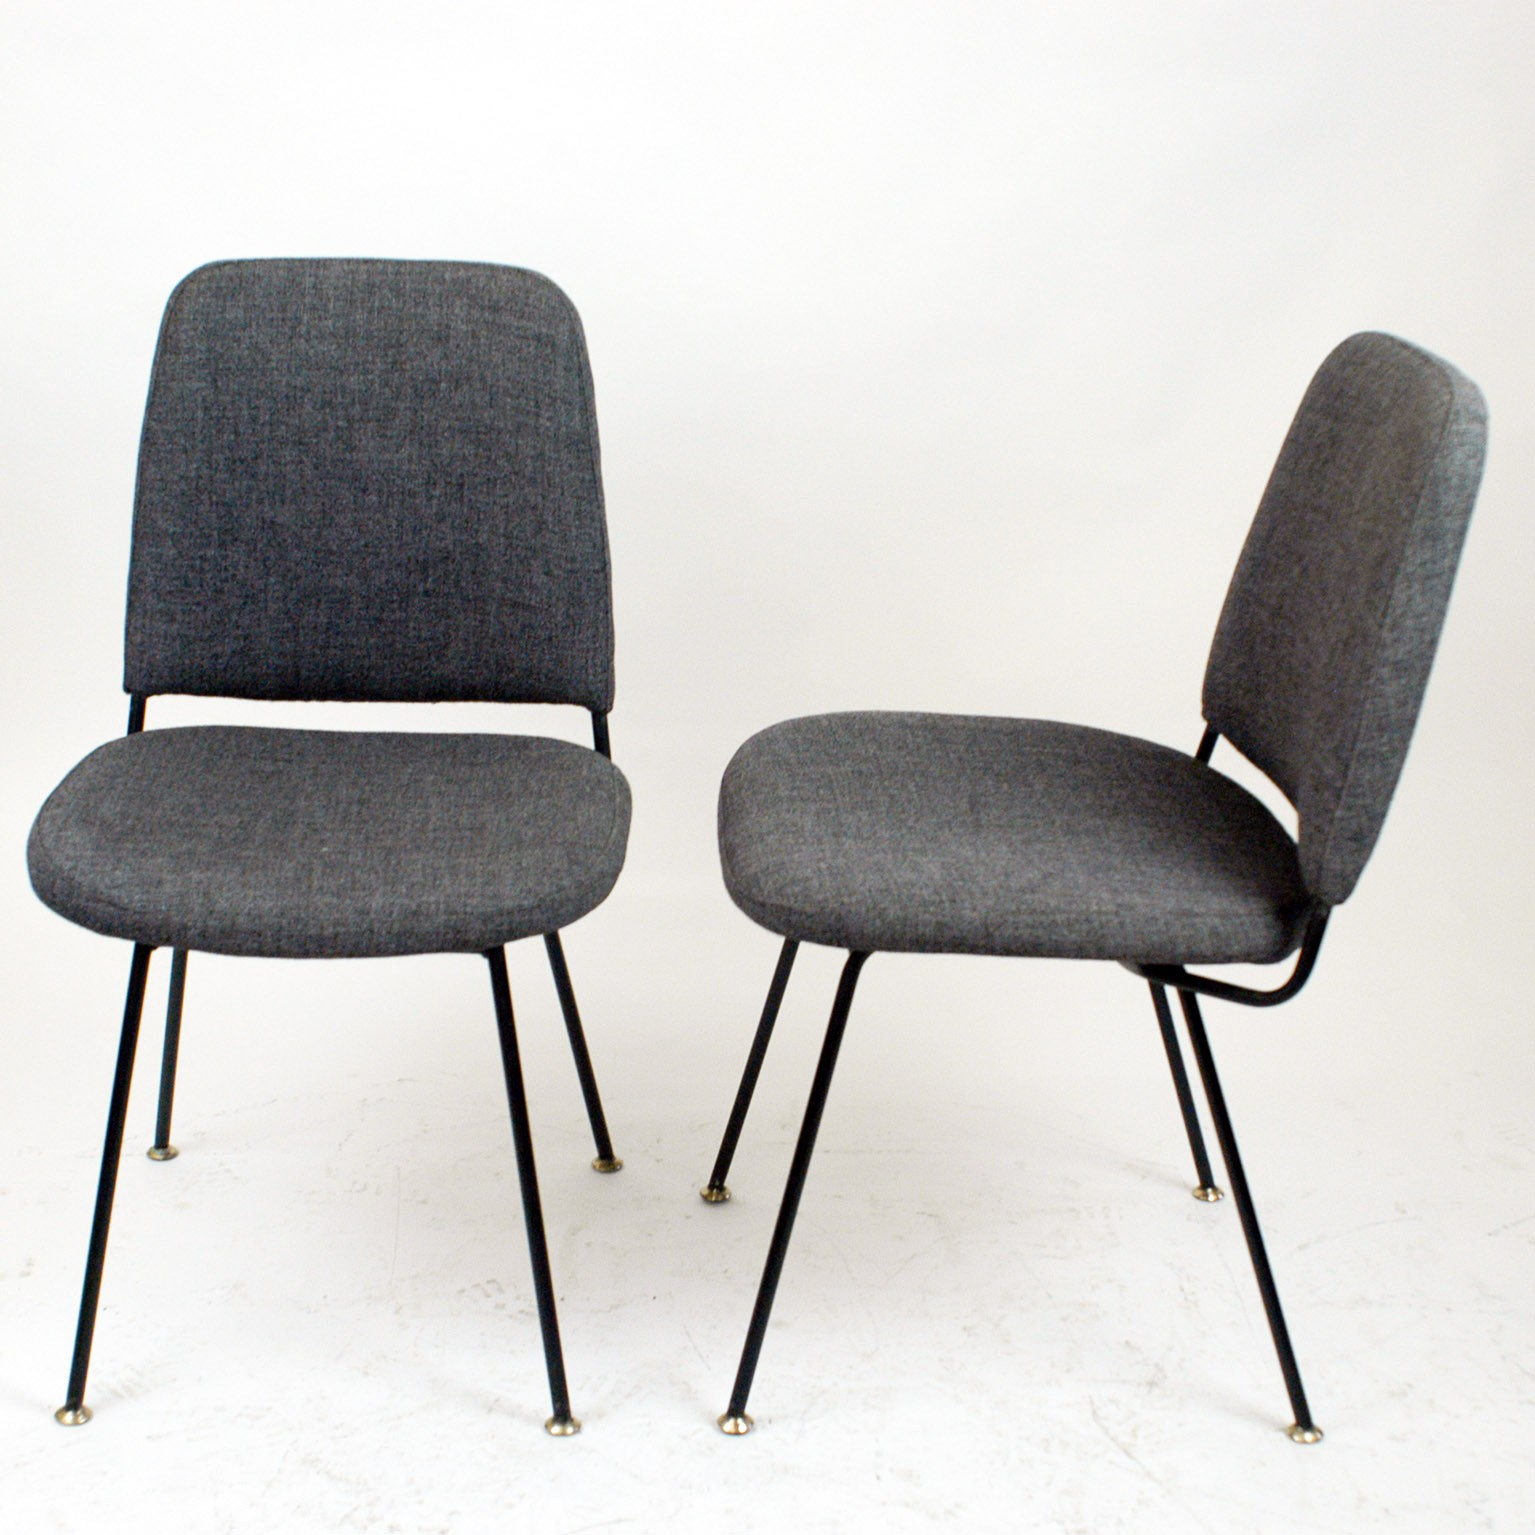 Pair Of Italian Midcentury Dining Chairs By Arflex 1950s